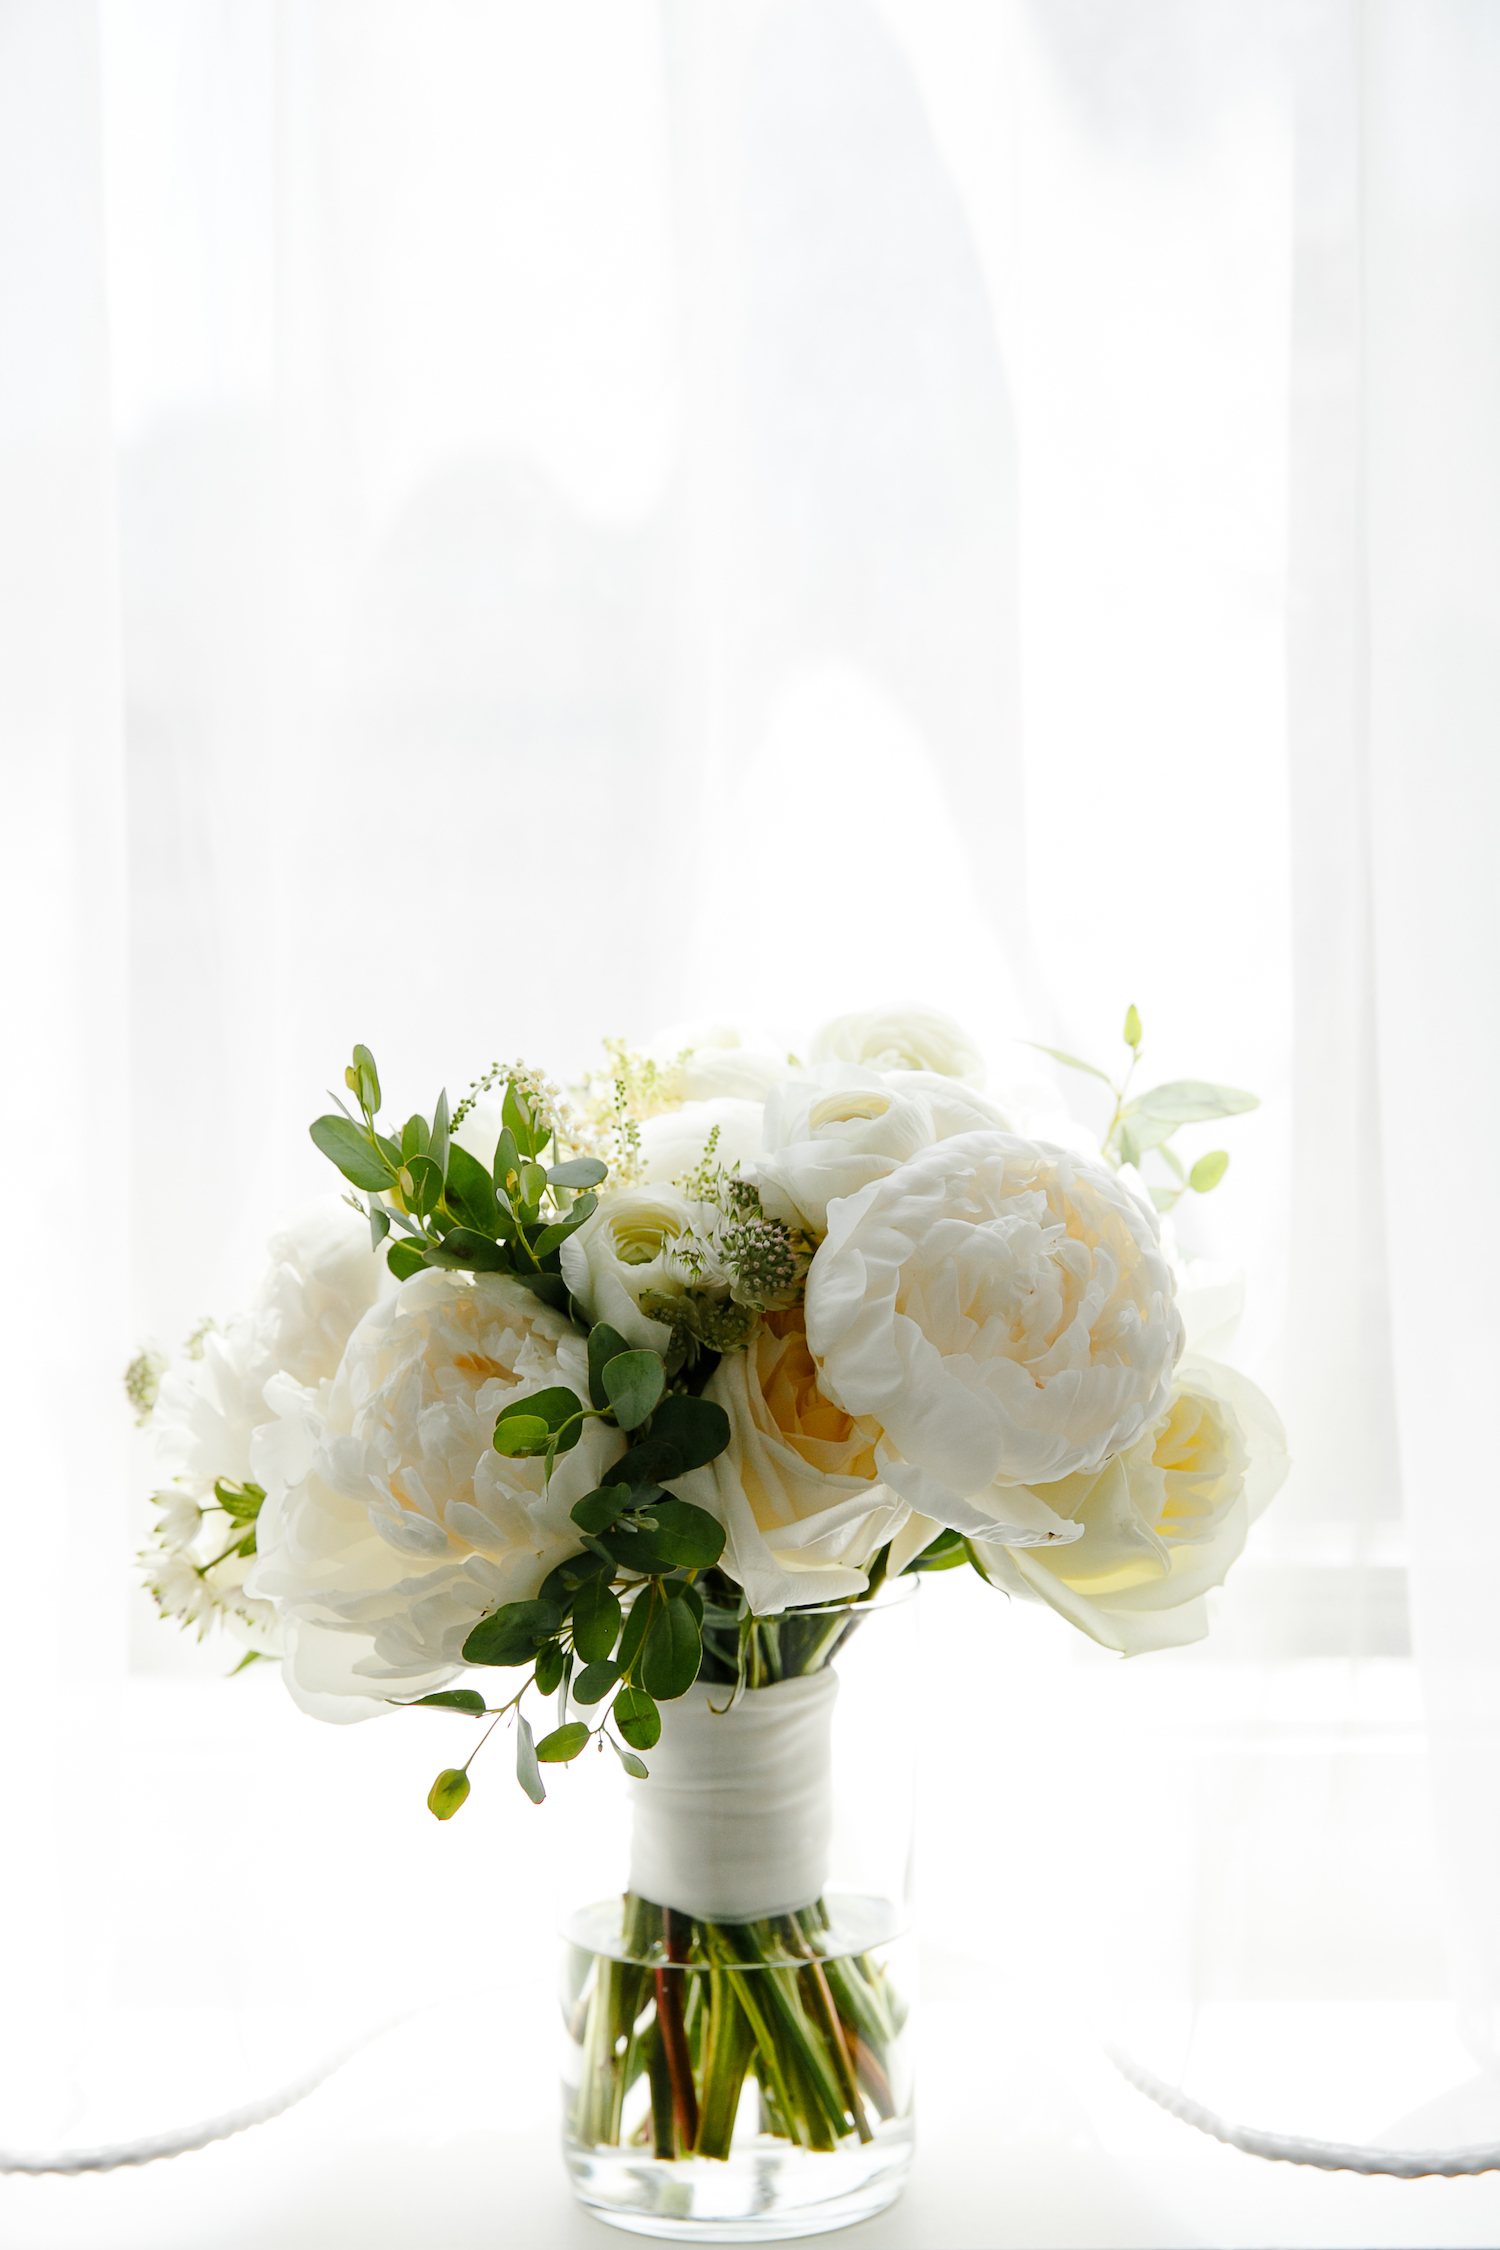 Classic peony and rose wedding bouquet for black tie Chicago wedding.